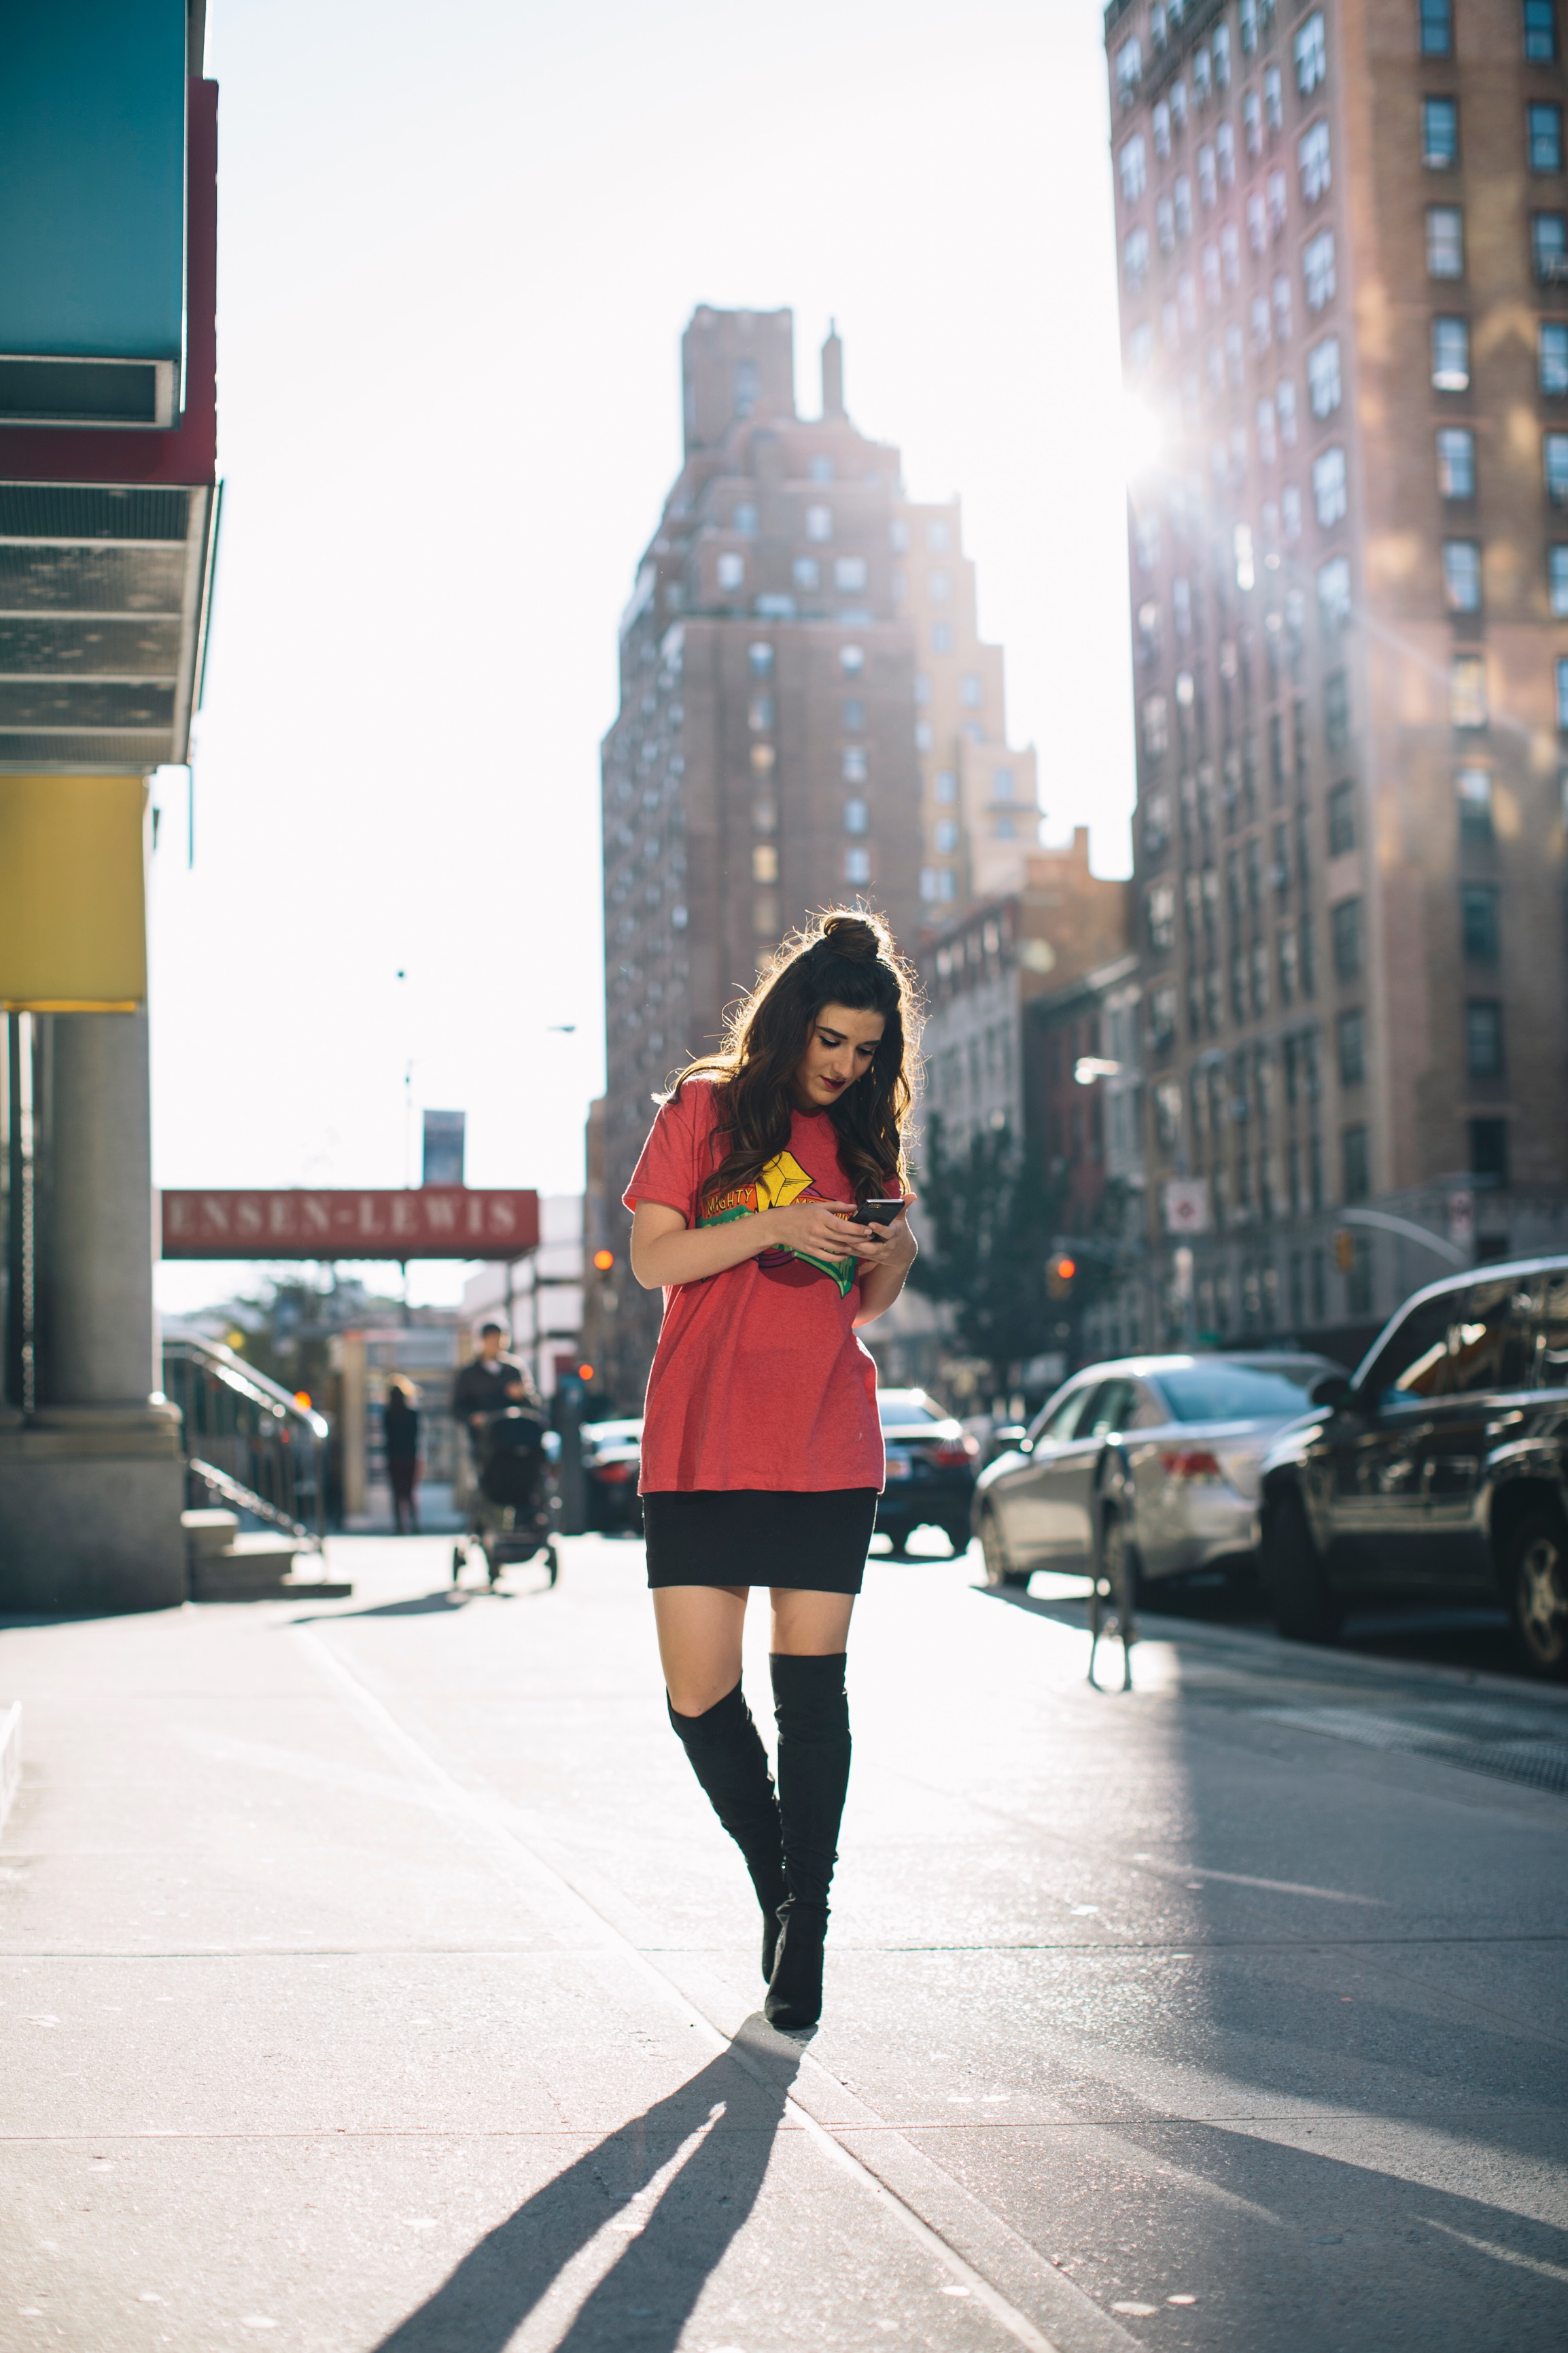 Power Rangers Tee + OTN Boots Hashtag Blogger Problems Louboutins & Love Fashion Blog Esther Santer NYC Street Style Blogger Outfit OOTD Trendy Red Top Black Mini Skirt Women Girl What To Wear Shopping Phone Hair Bun Topknot  Fun Edgy Graphic T-Shirt.jpg